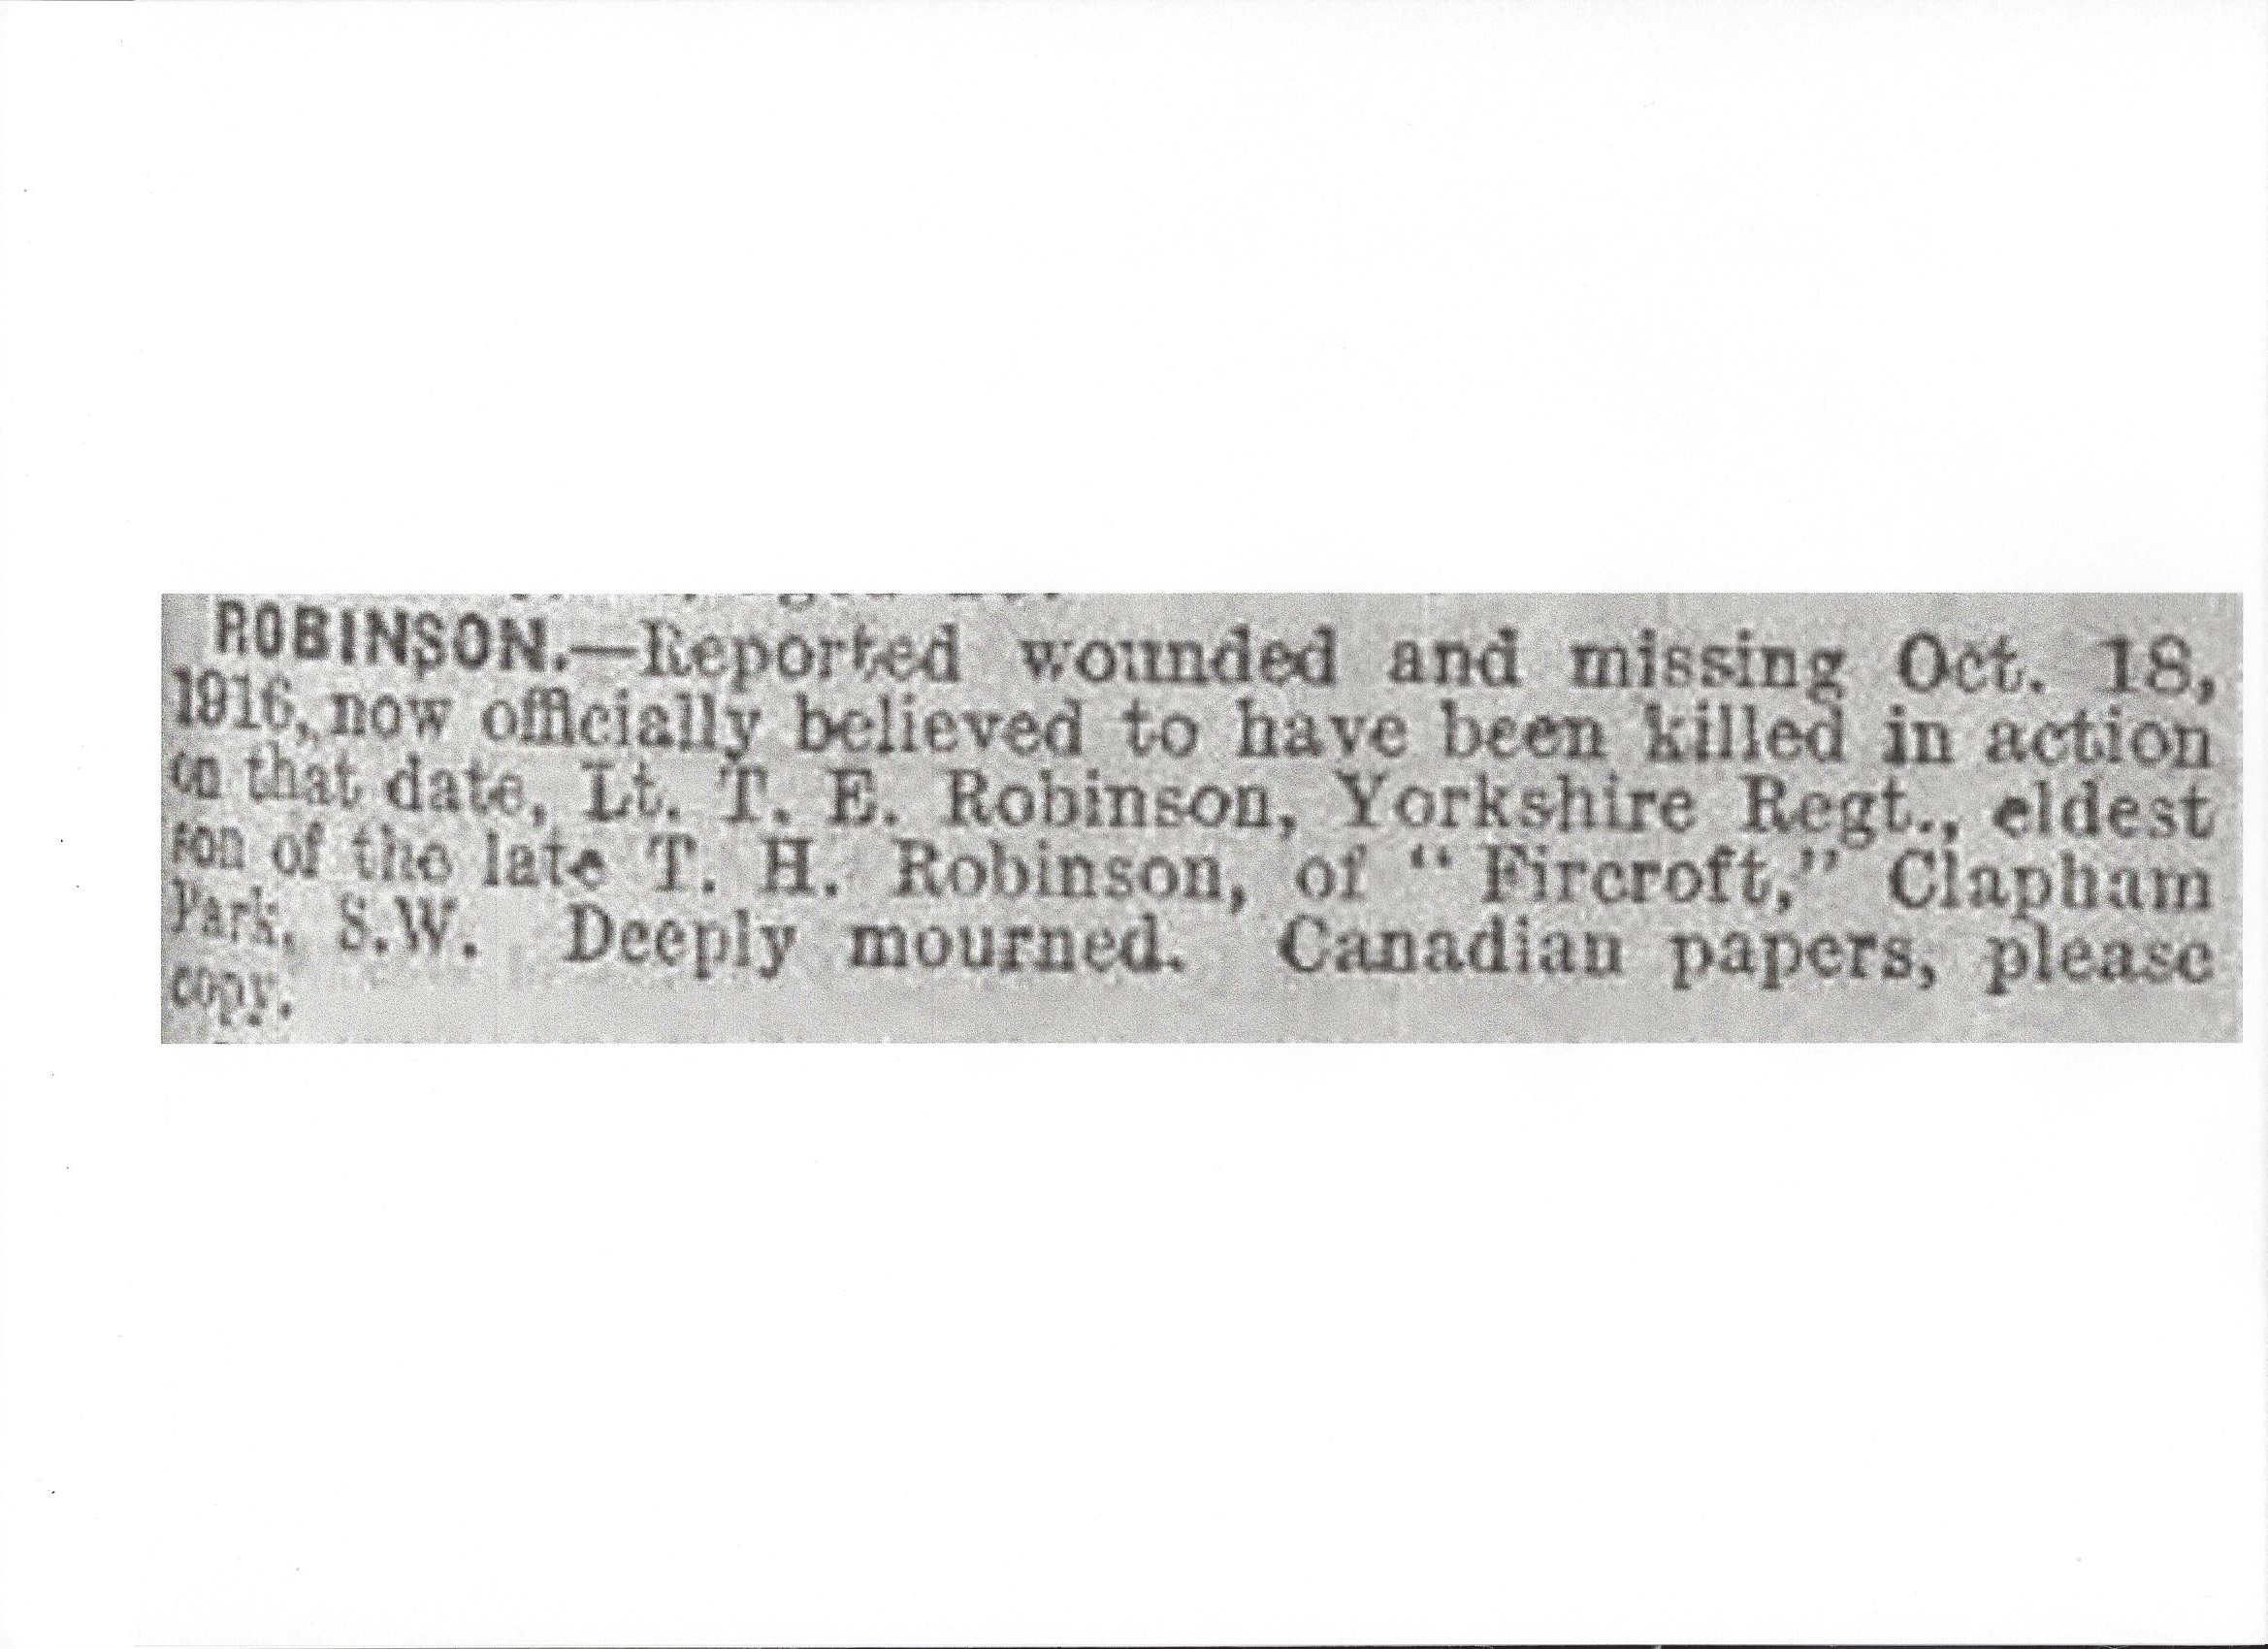 Newspaper Clipping– Newspaper clipping from the Daily Telegraph of October 18, 1917. Image taken from web address of http://www.telegraph.co.uk/news/ww1-archive/12214892/Daily-Telegraph-October-18-1917.html